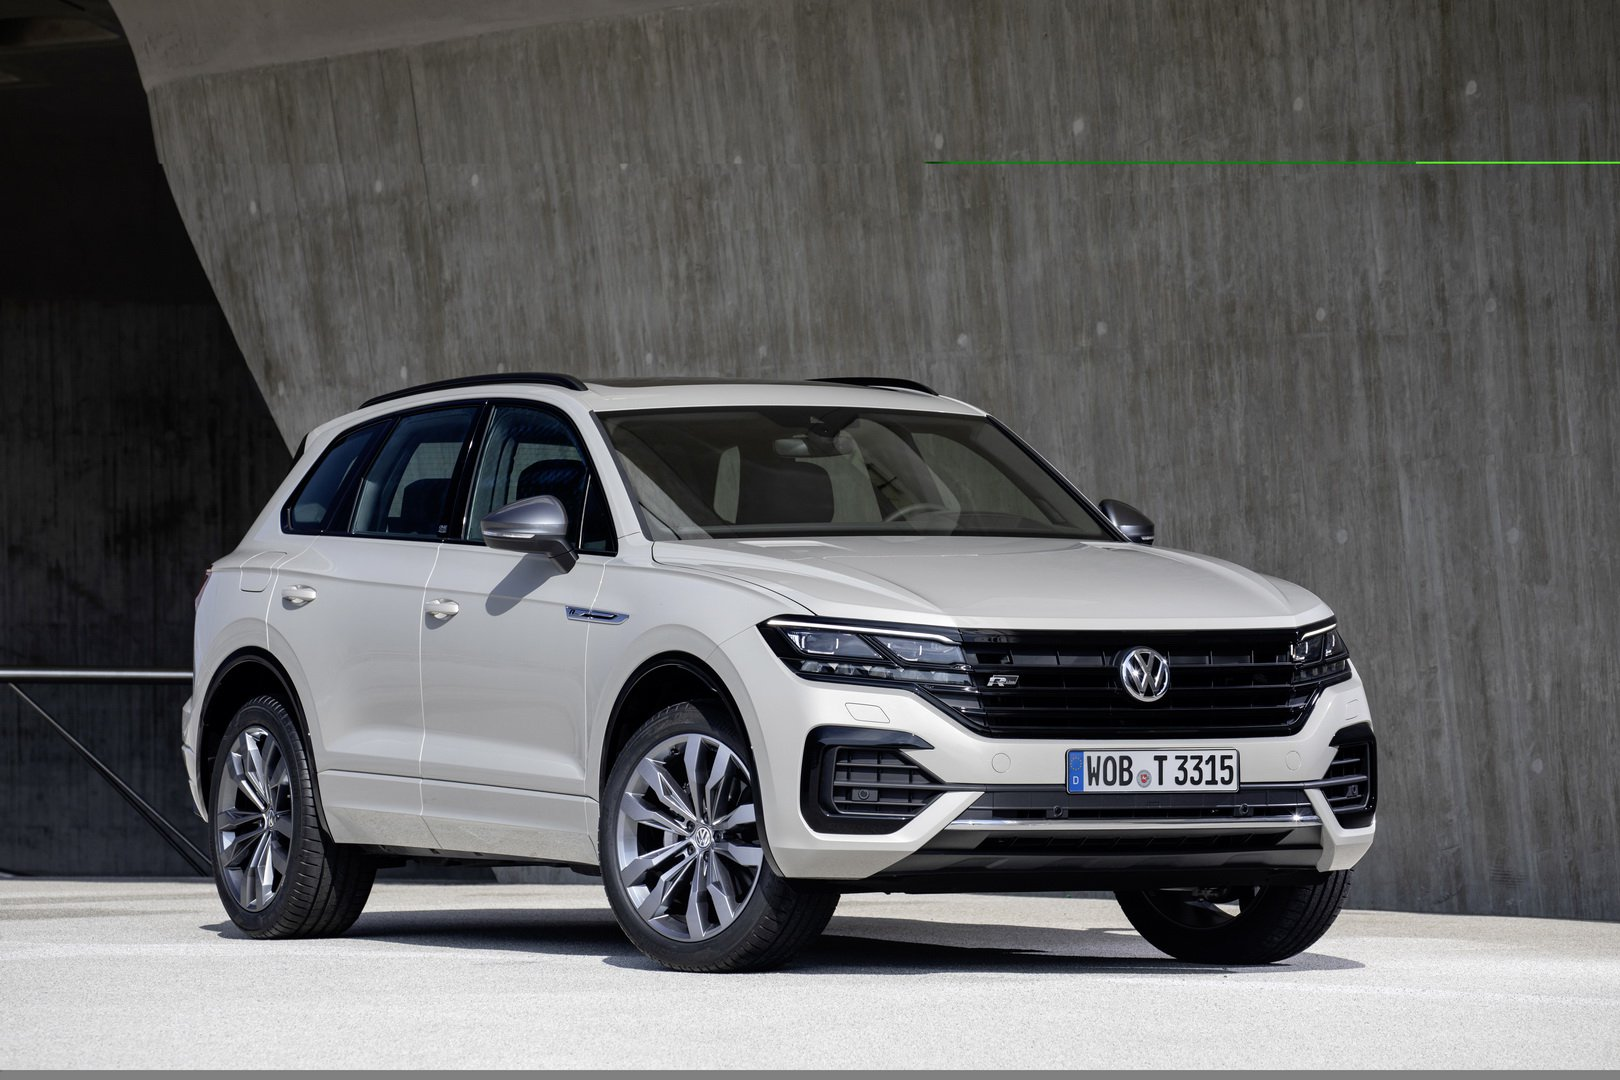 2021 Volkswagen Touareg Review and Release date